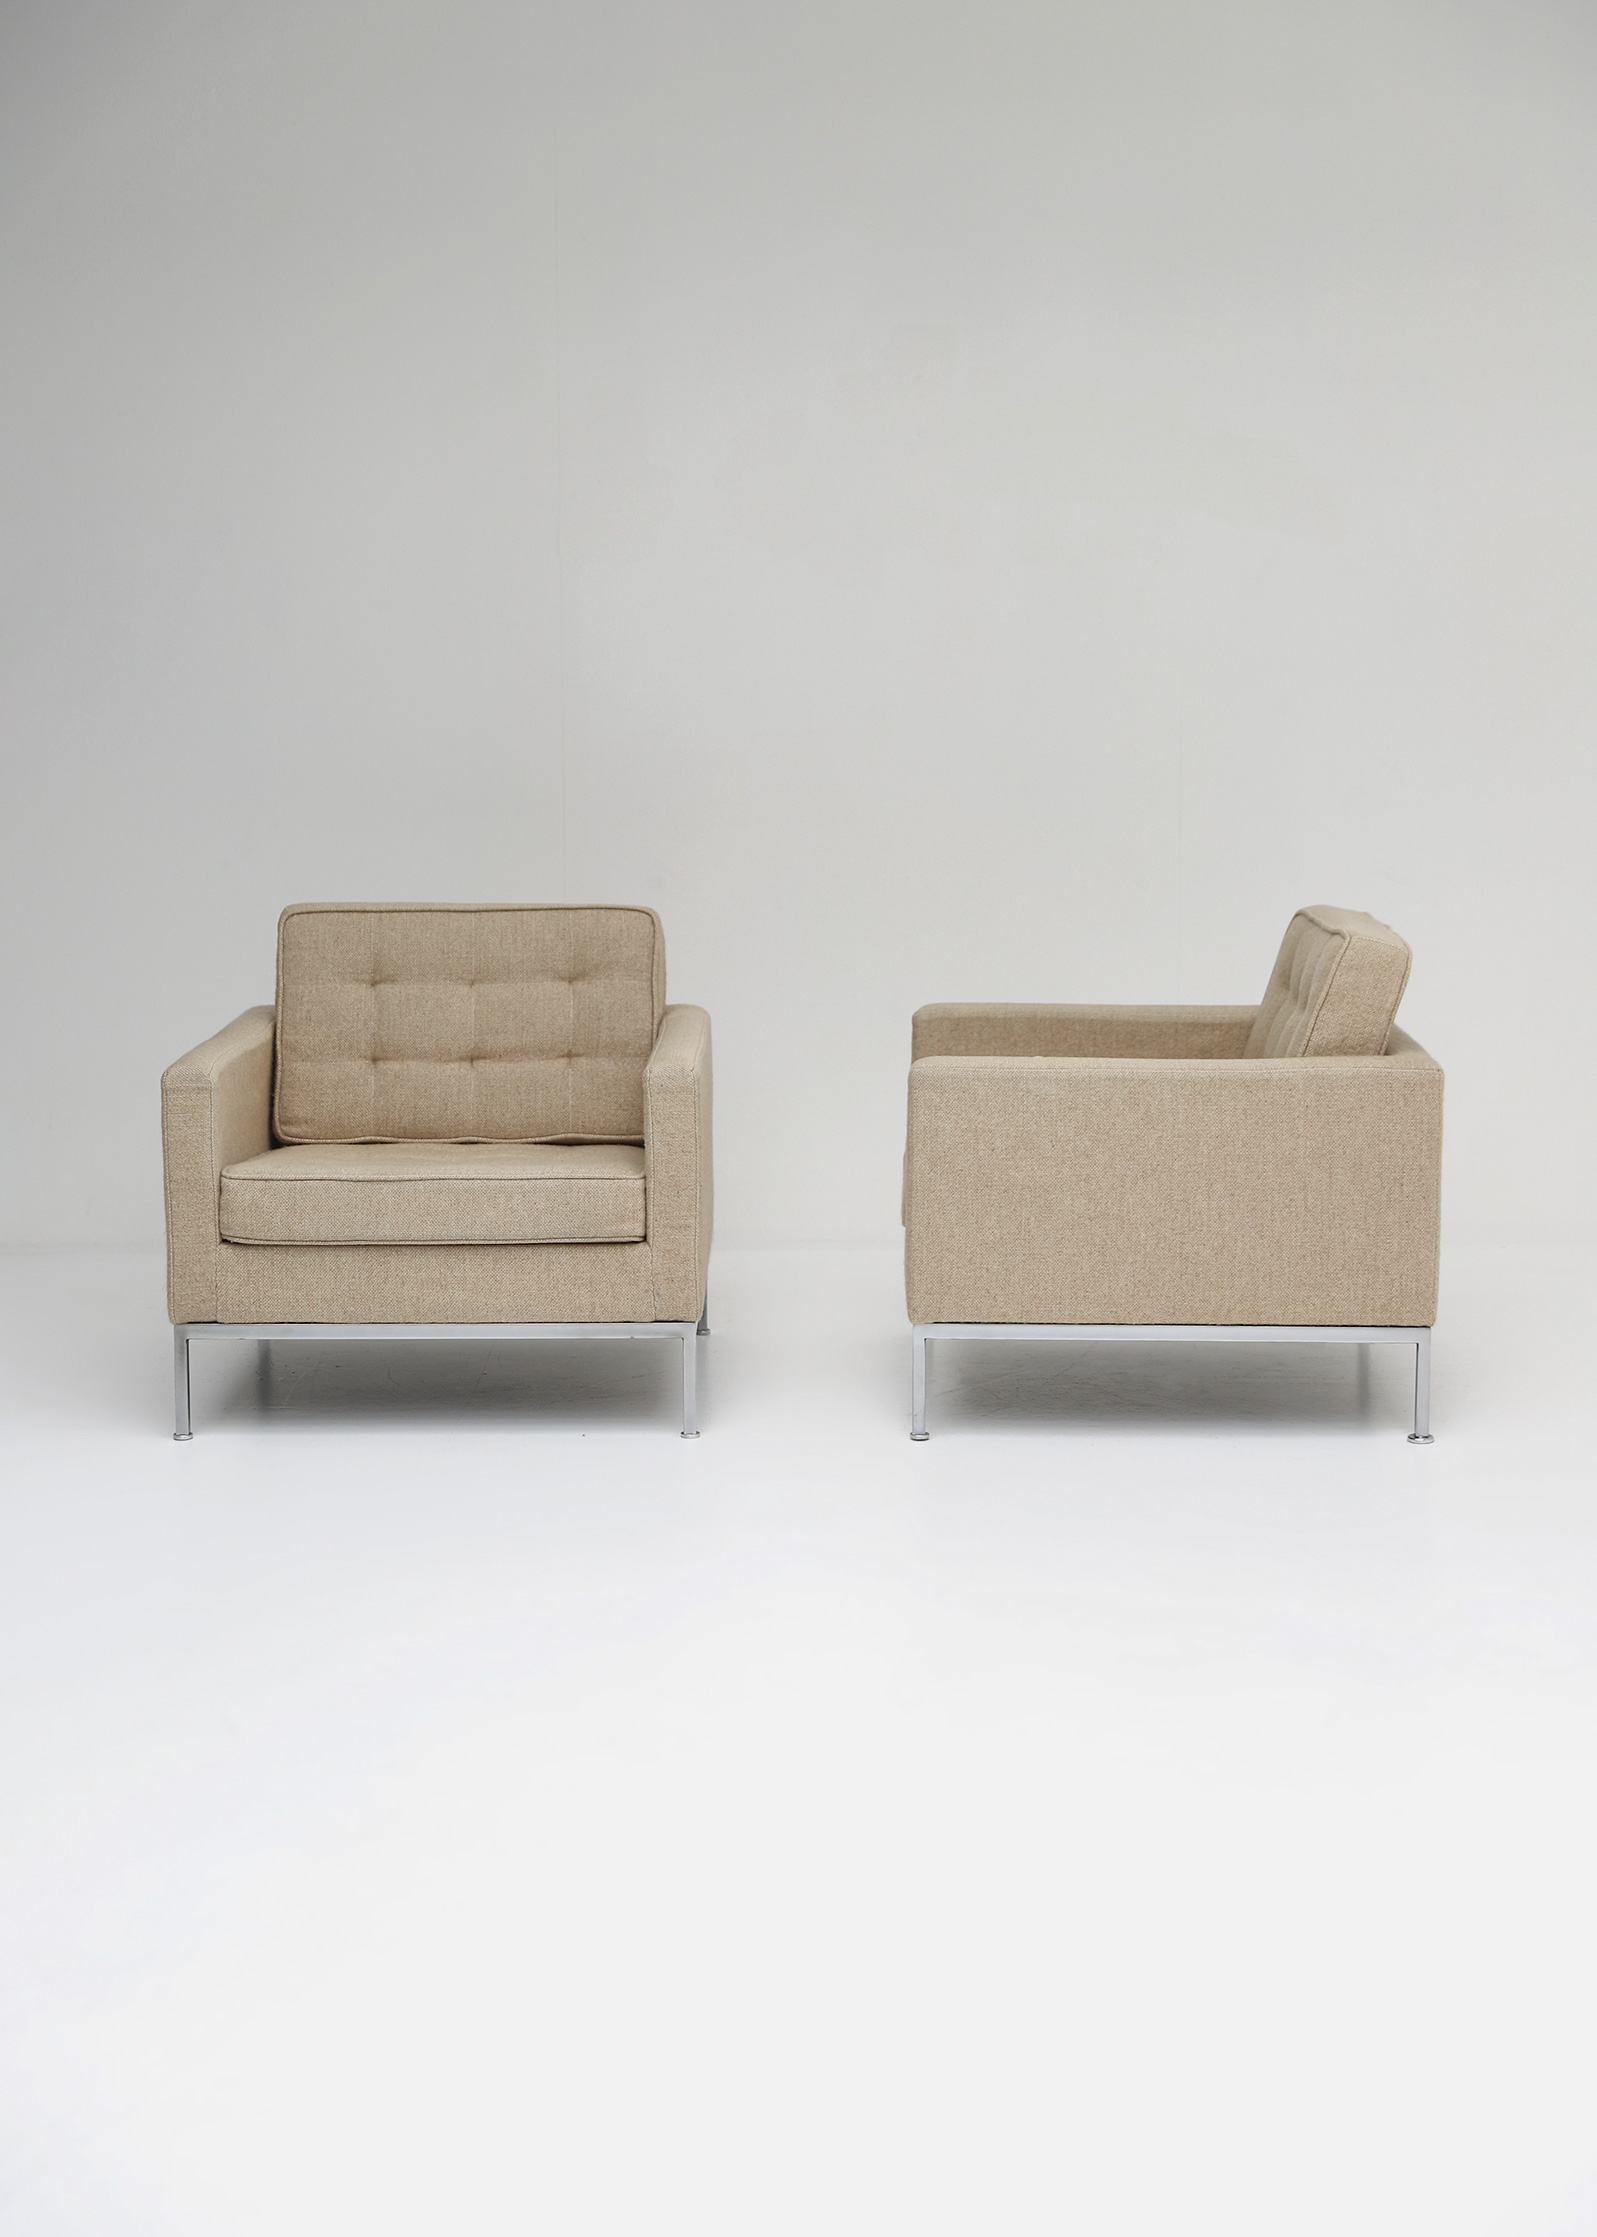 Florence Knoll Arm Chairsimage 12